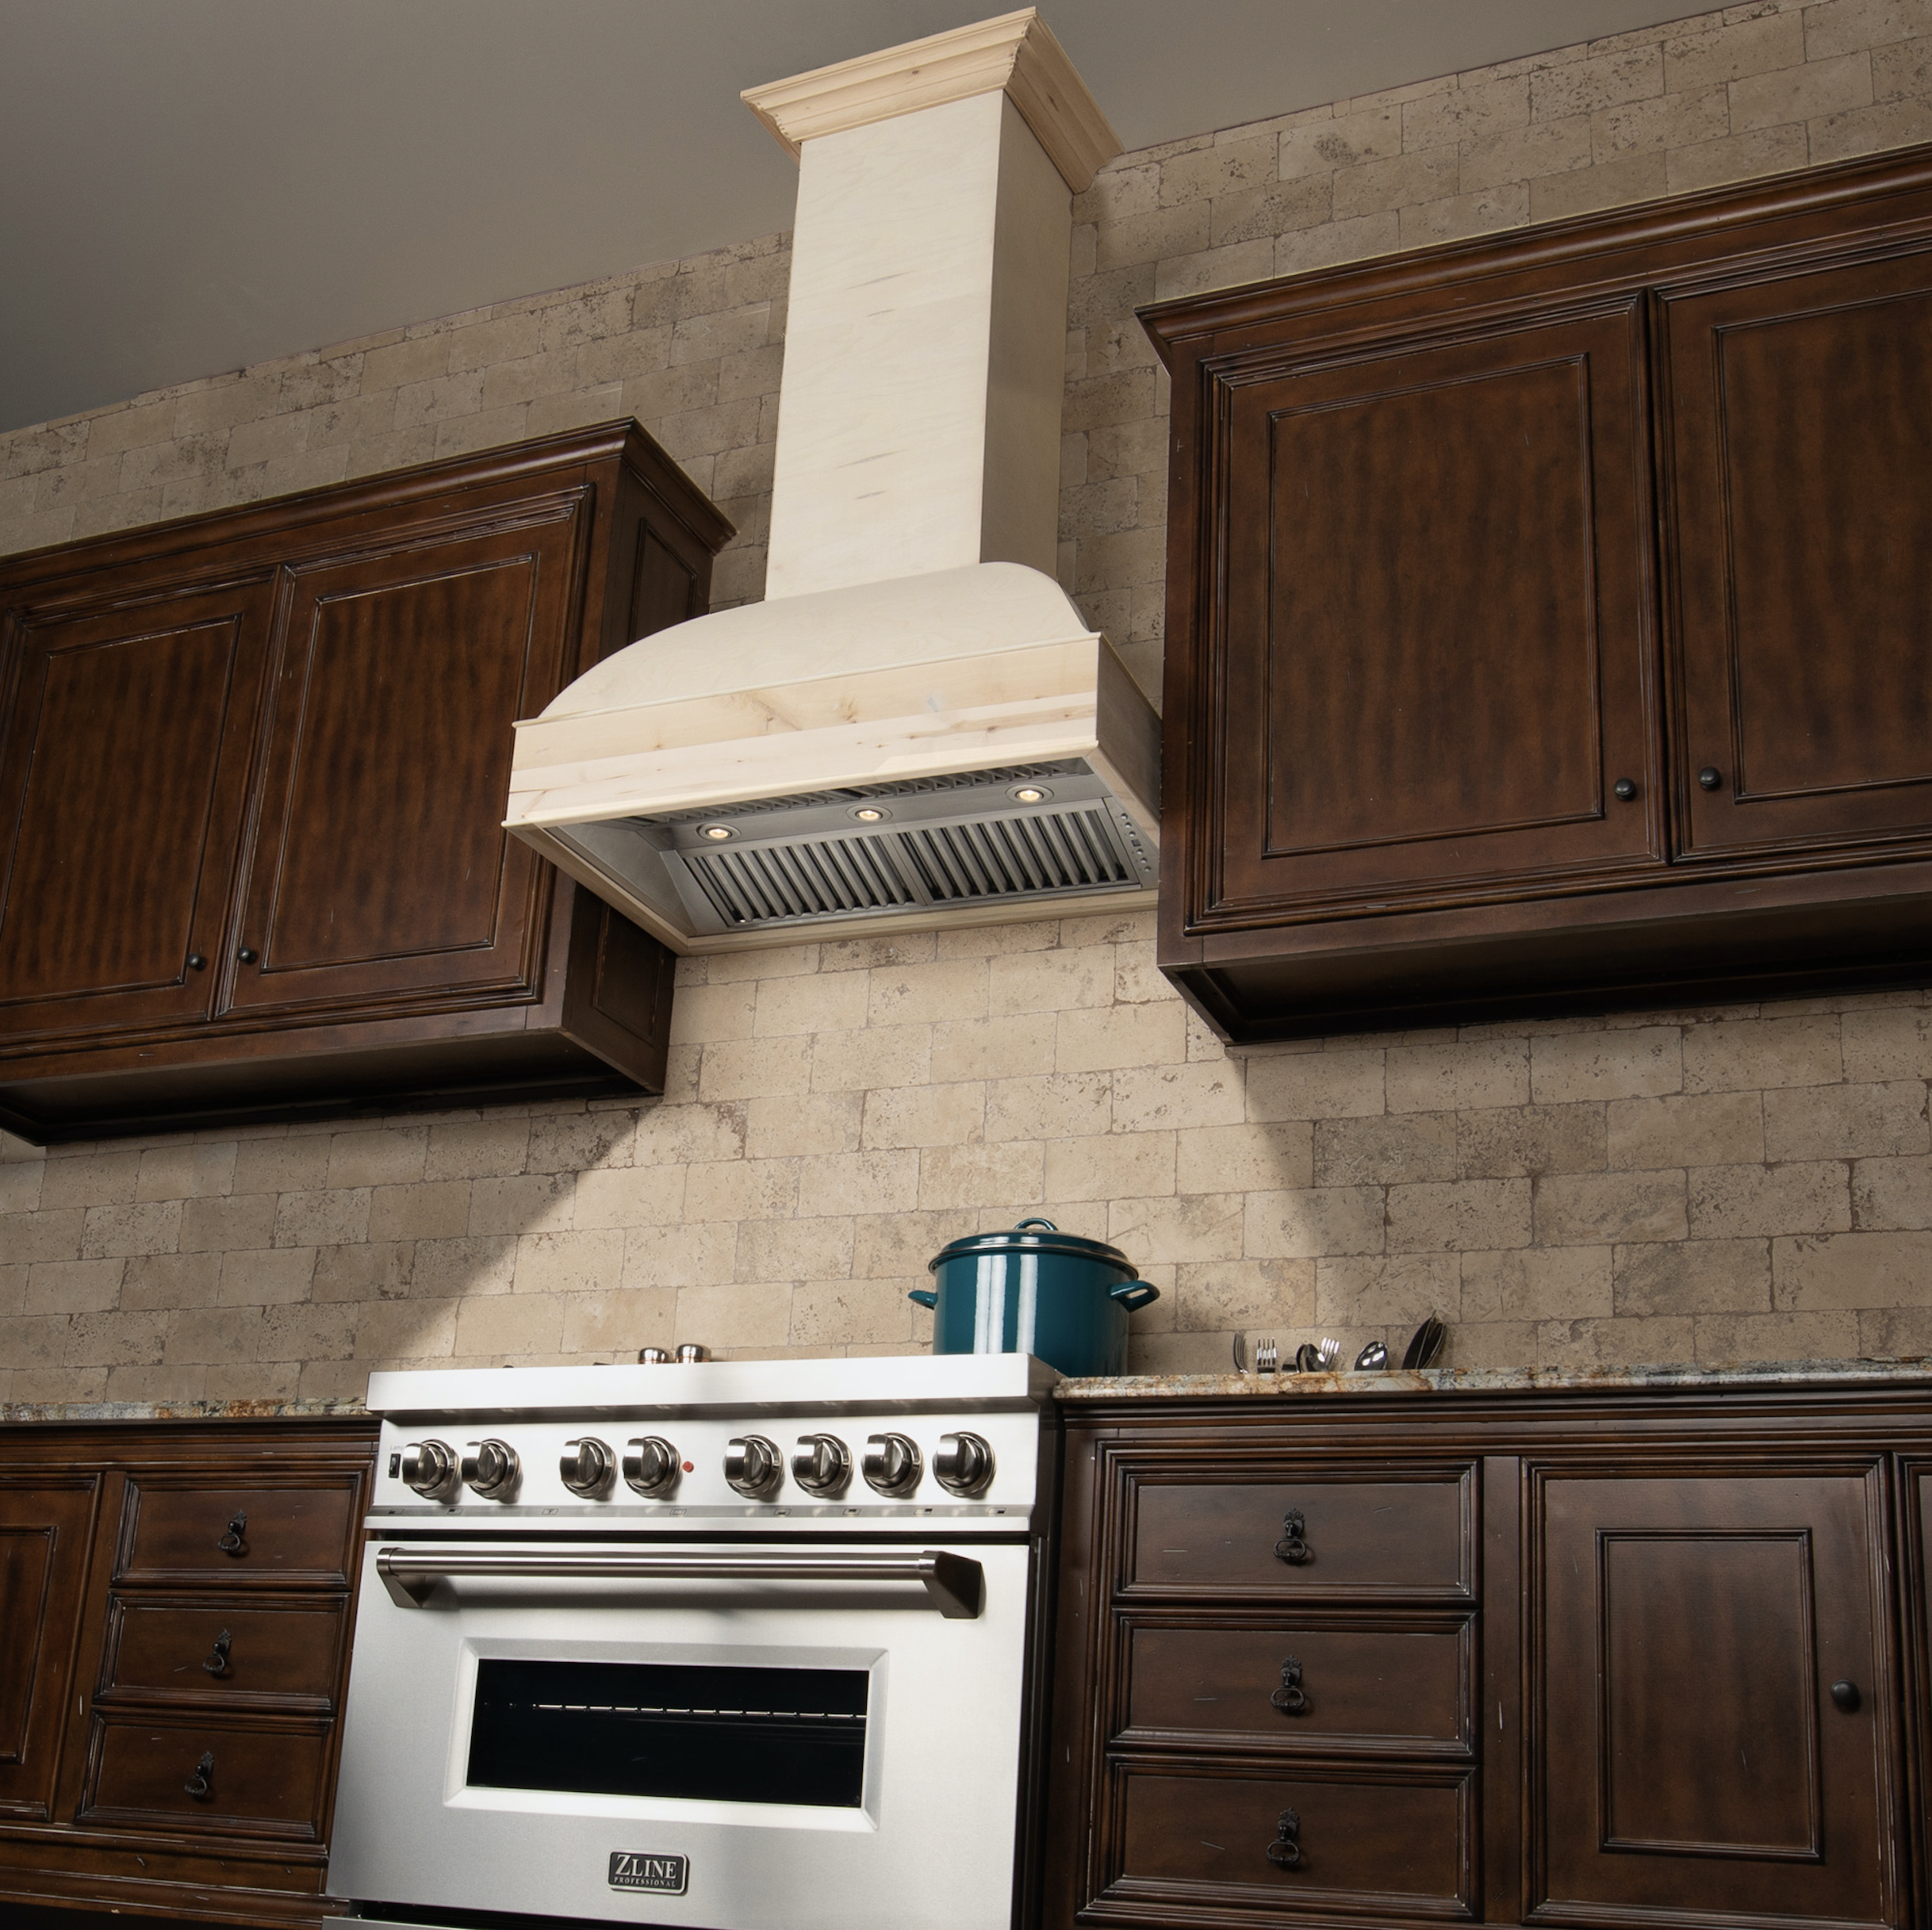 Customize Your Wooden Rangehood With The Unfinished Model Wall Mount Range Hood Range Hood Wooden Walls